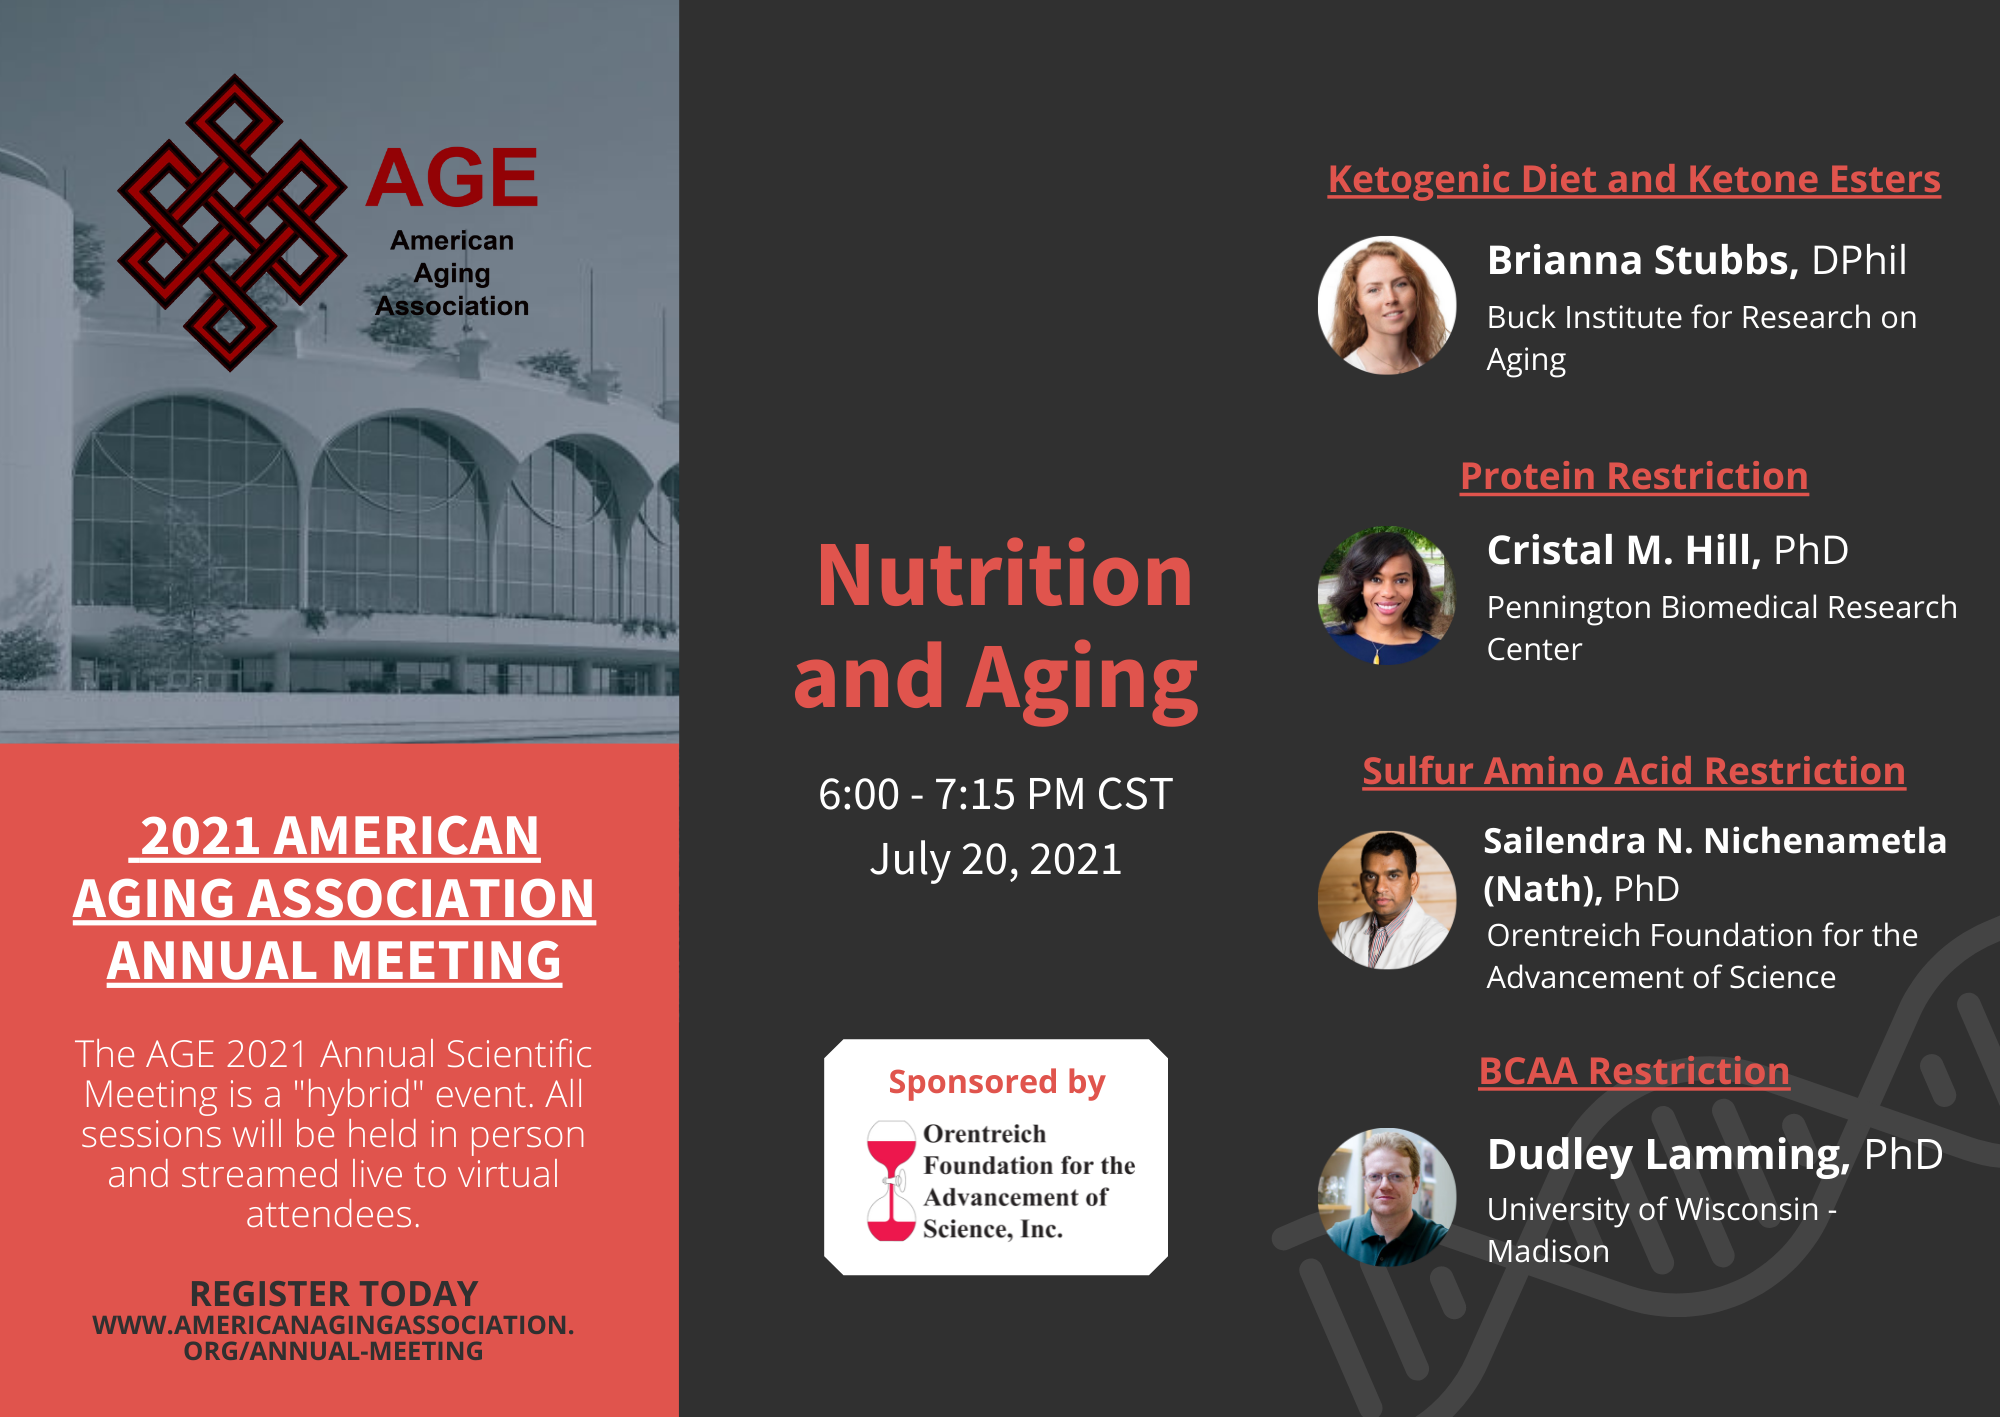 AGE 2021 Annual Scientific Meeting: Nutrition and Aging